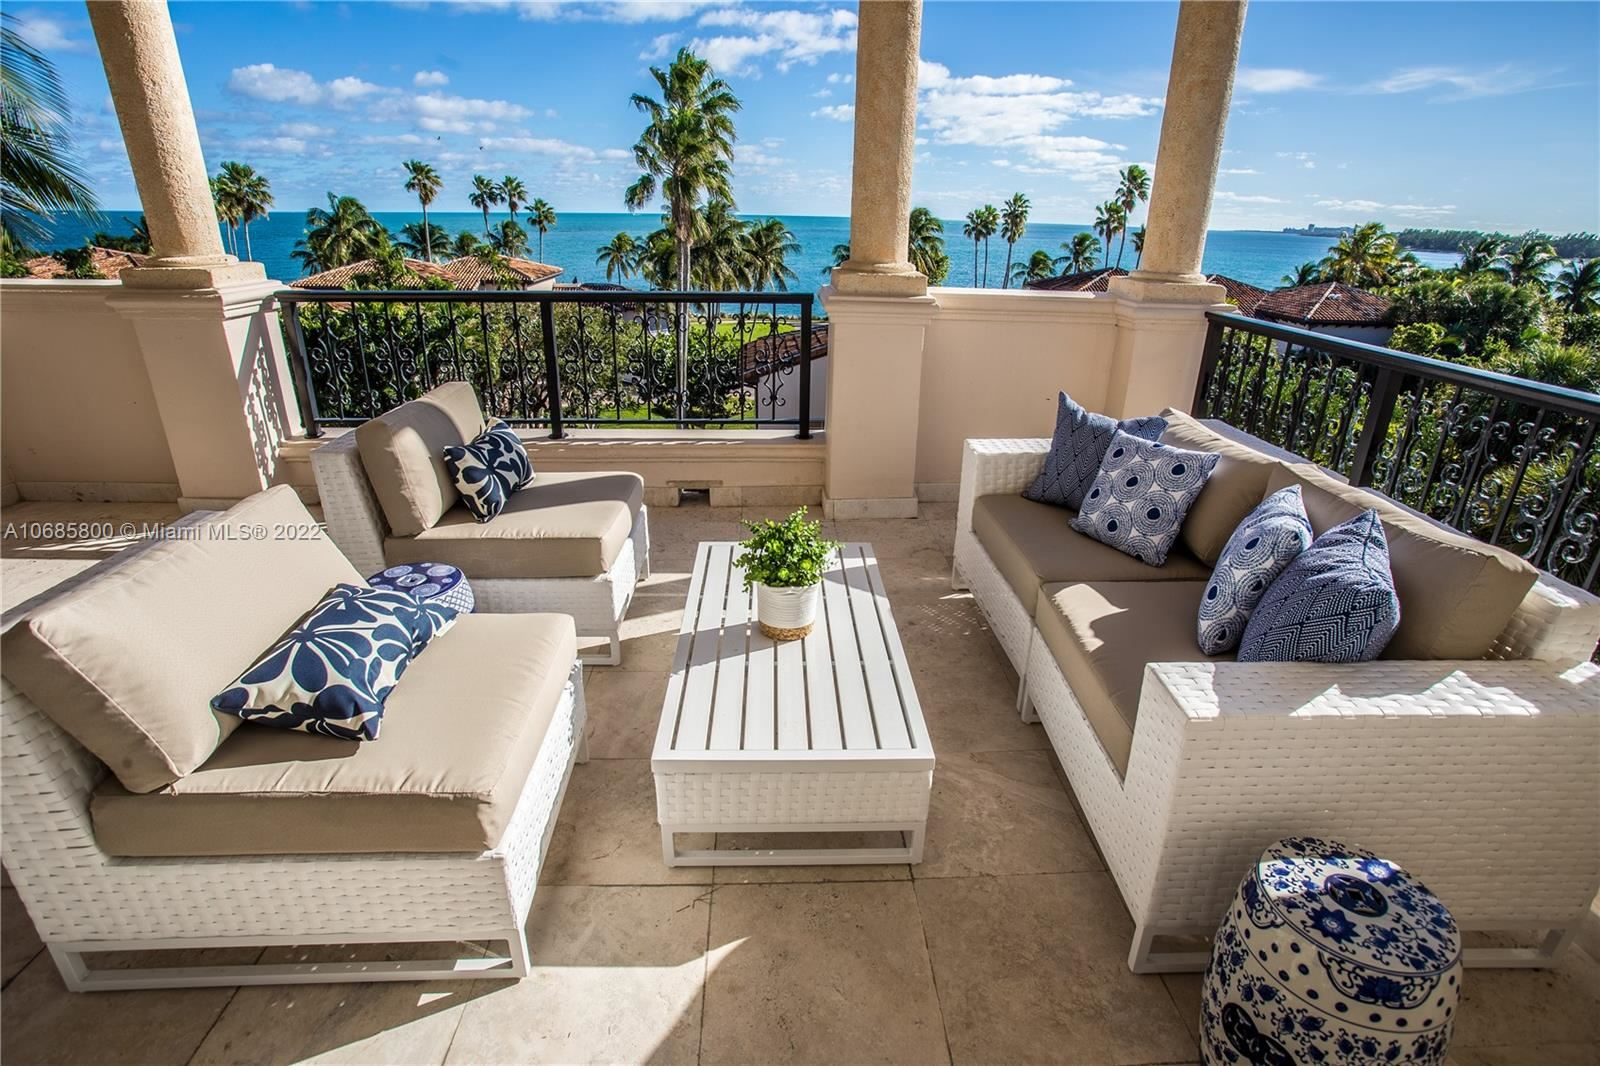 Photo of 19144 Fisher Island Dr #19144, Fisher Island, FL 33109 (MLS # A10685800)